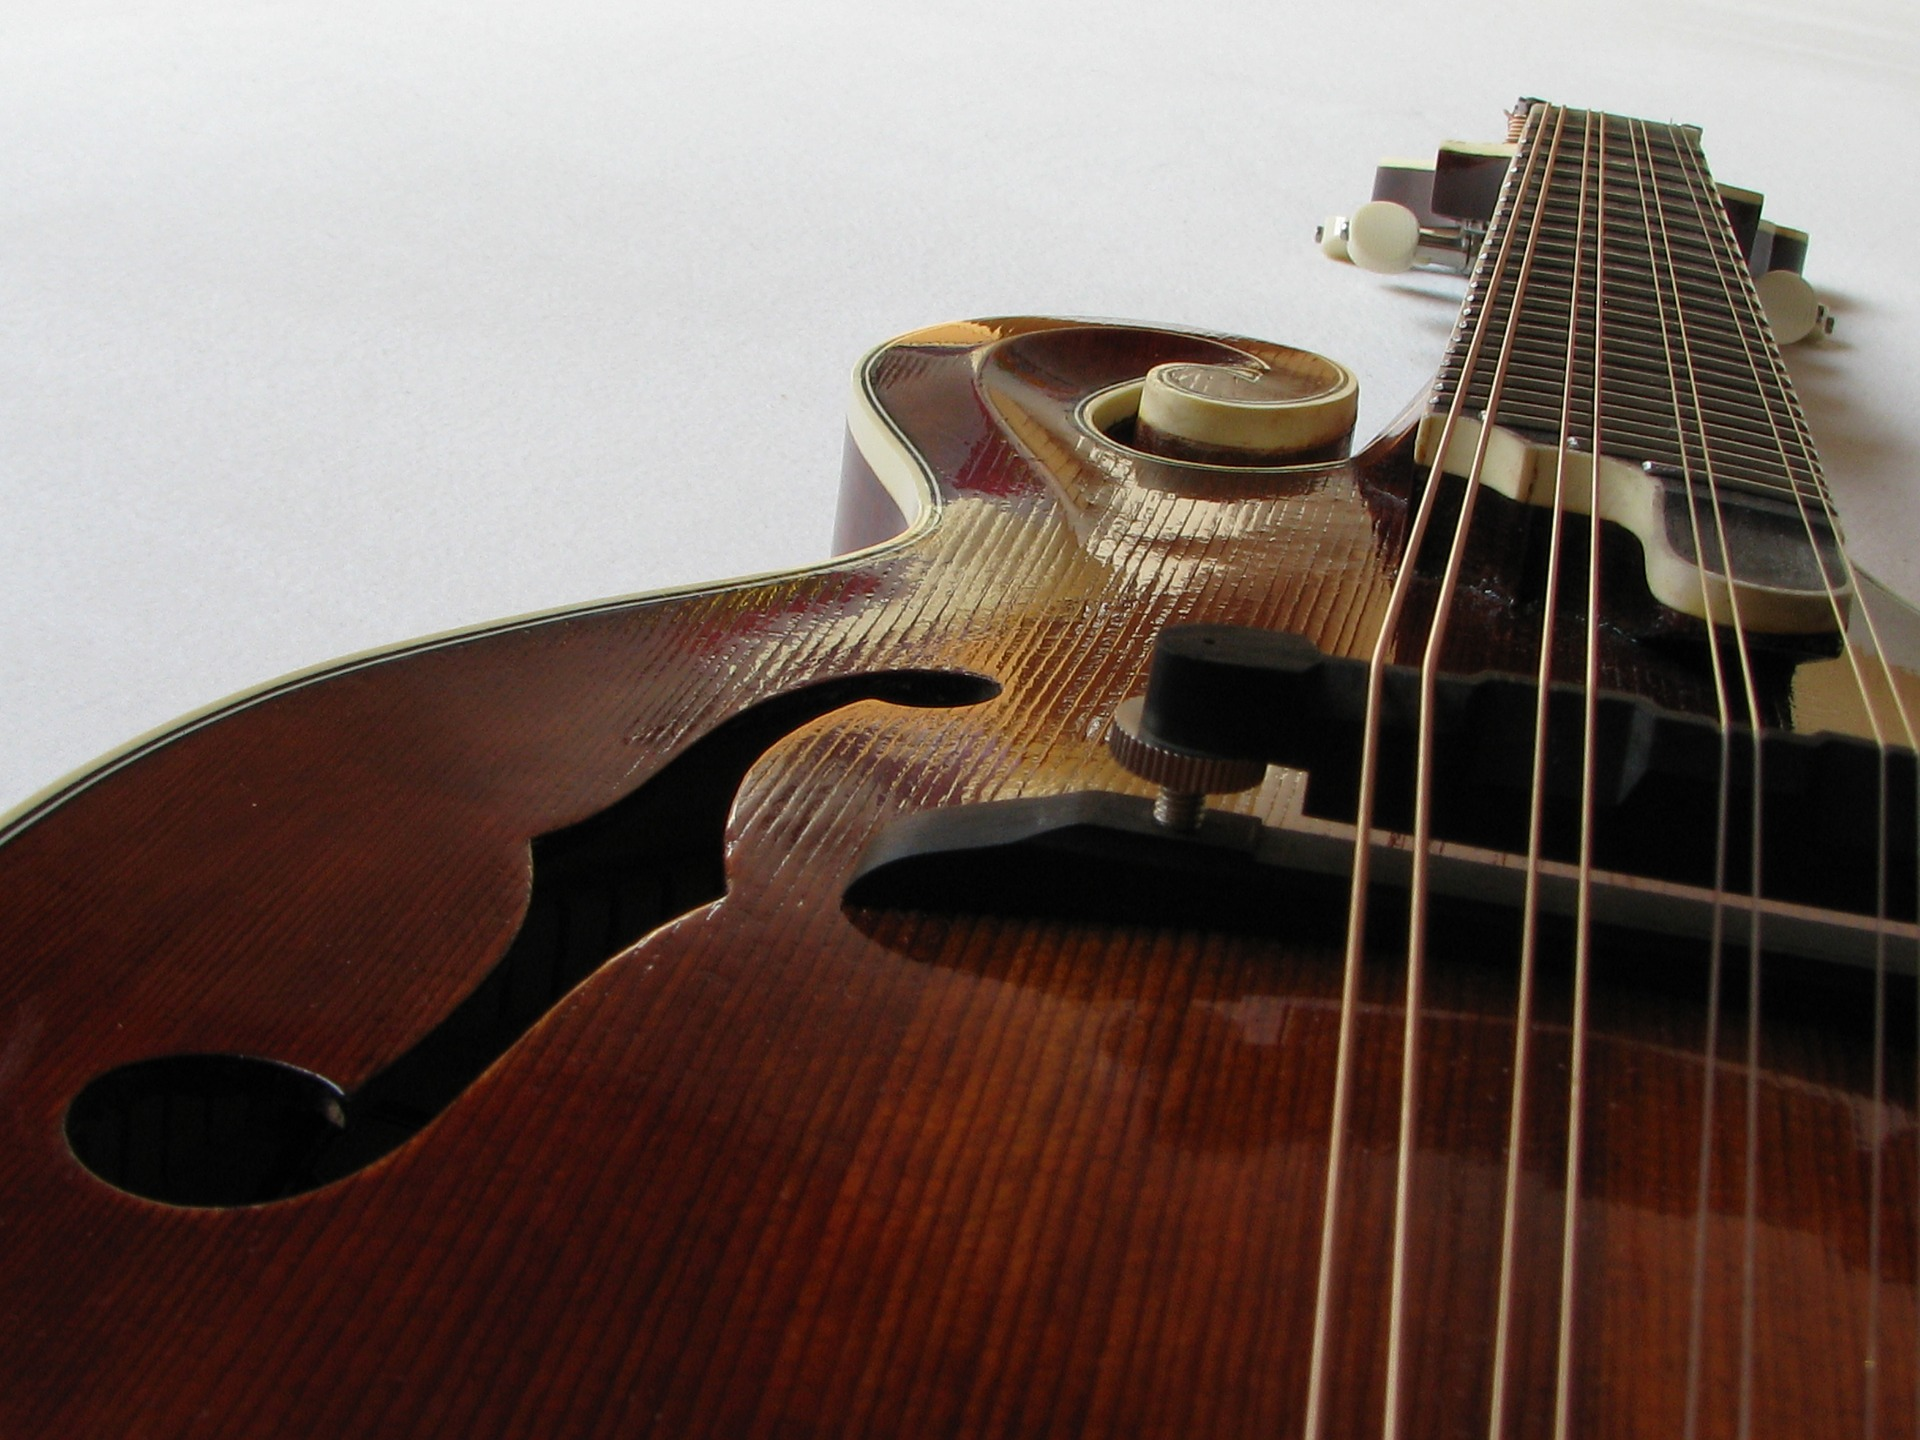 Best cheap mandolin for beginners